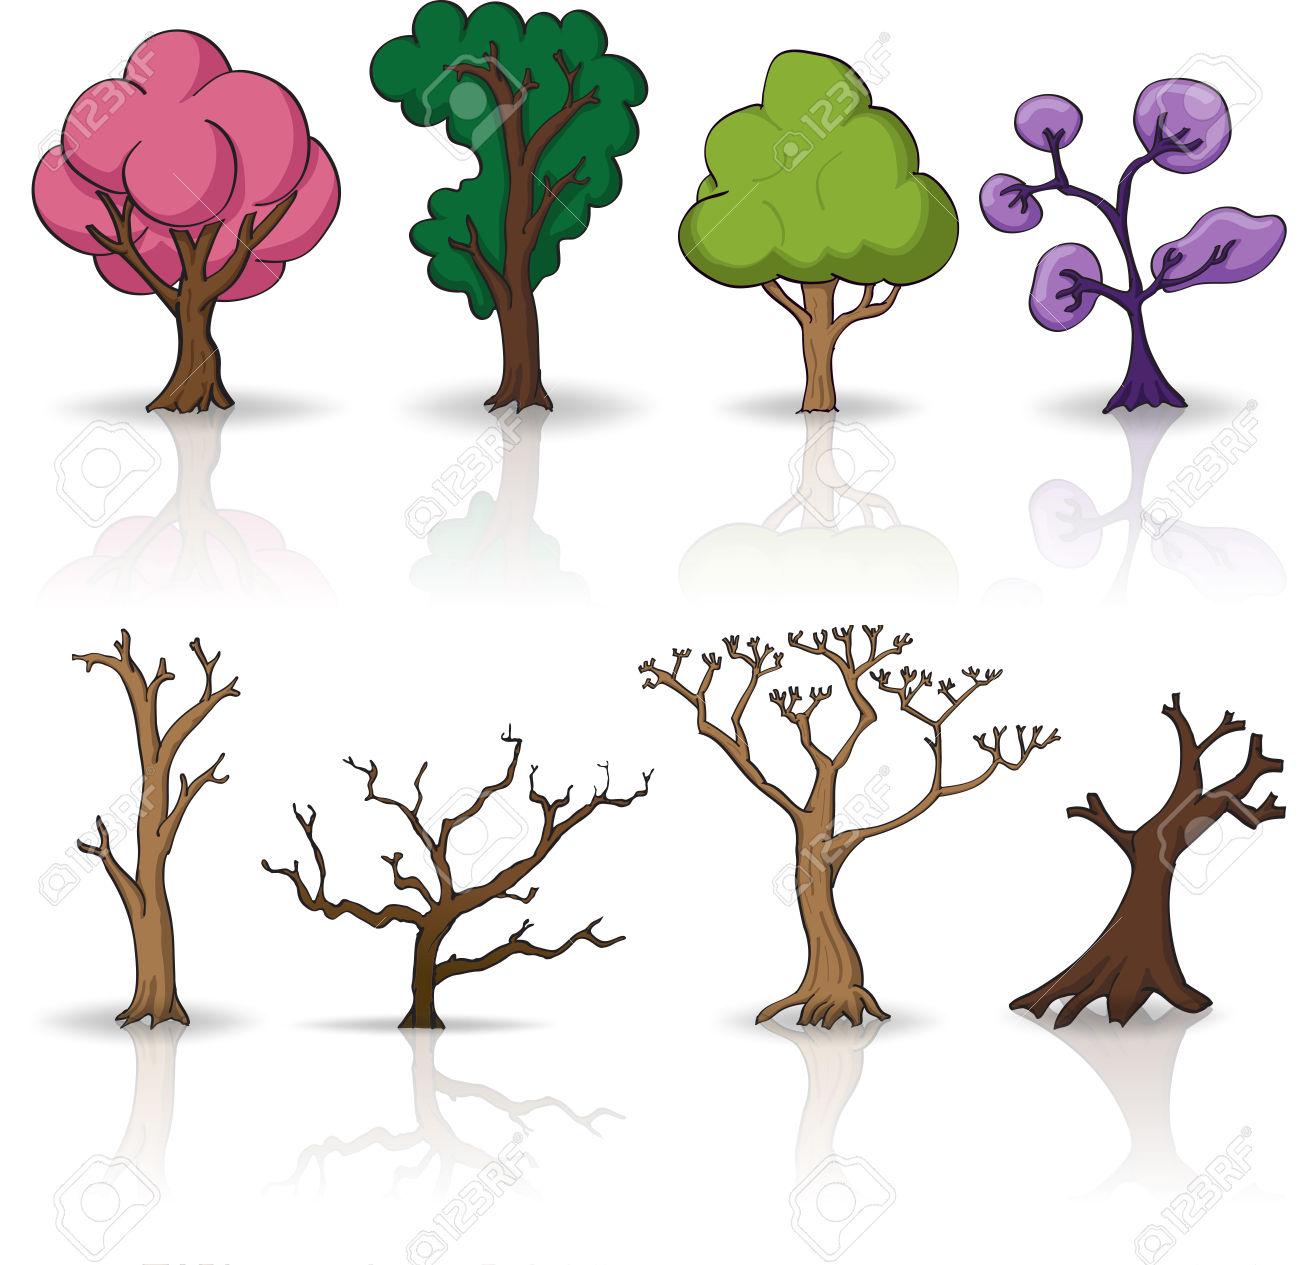 Dry area plants clipart - Clipground